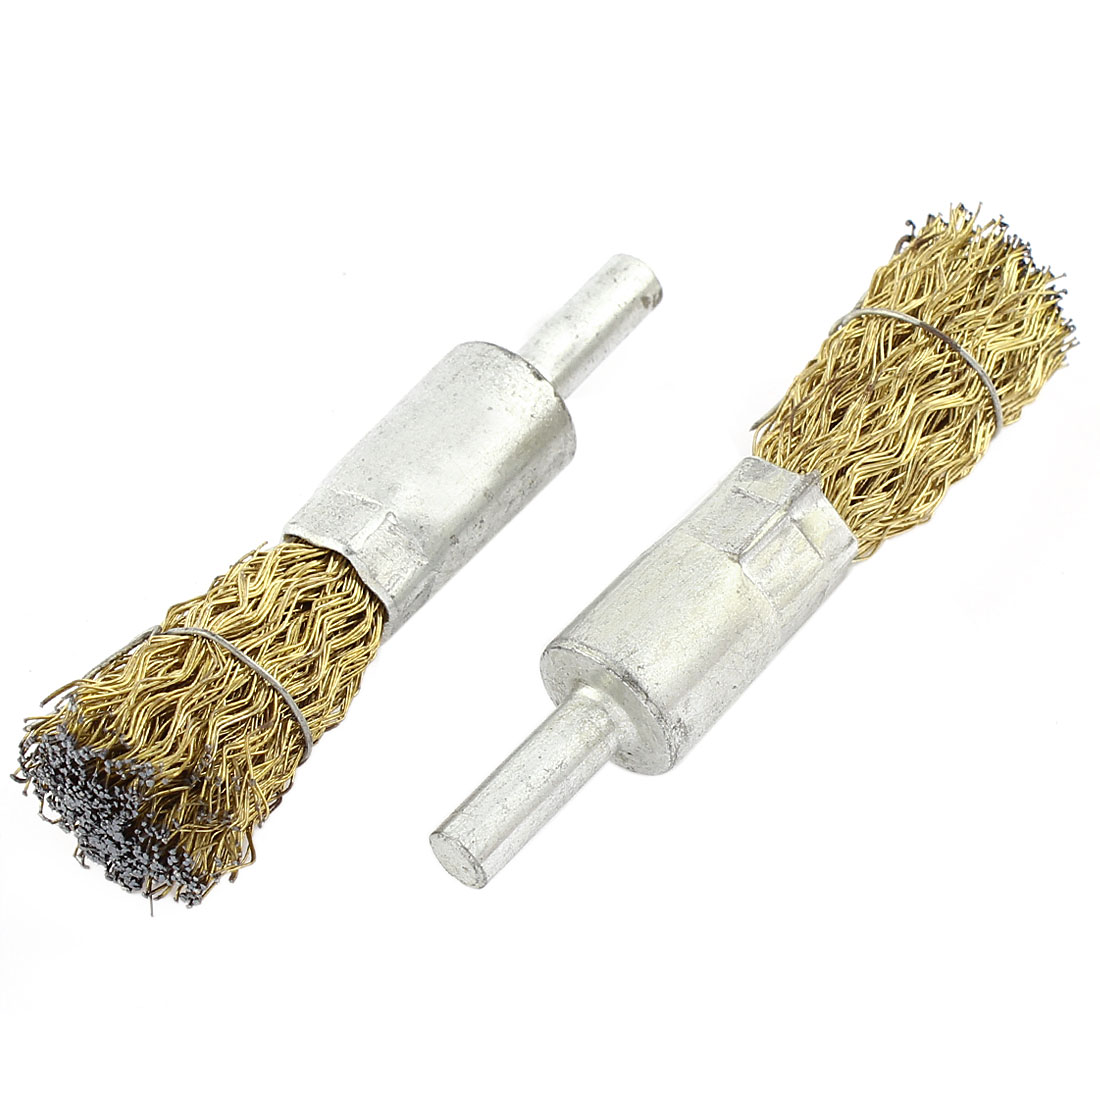 2pcs 16 x 30mm Steel Wire Pen Shape Polishing Grinding Brush Rotary Tool